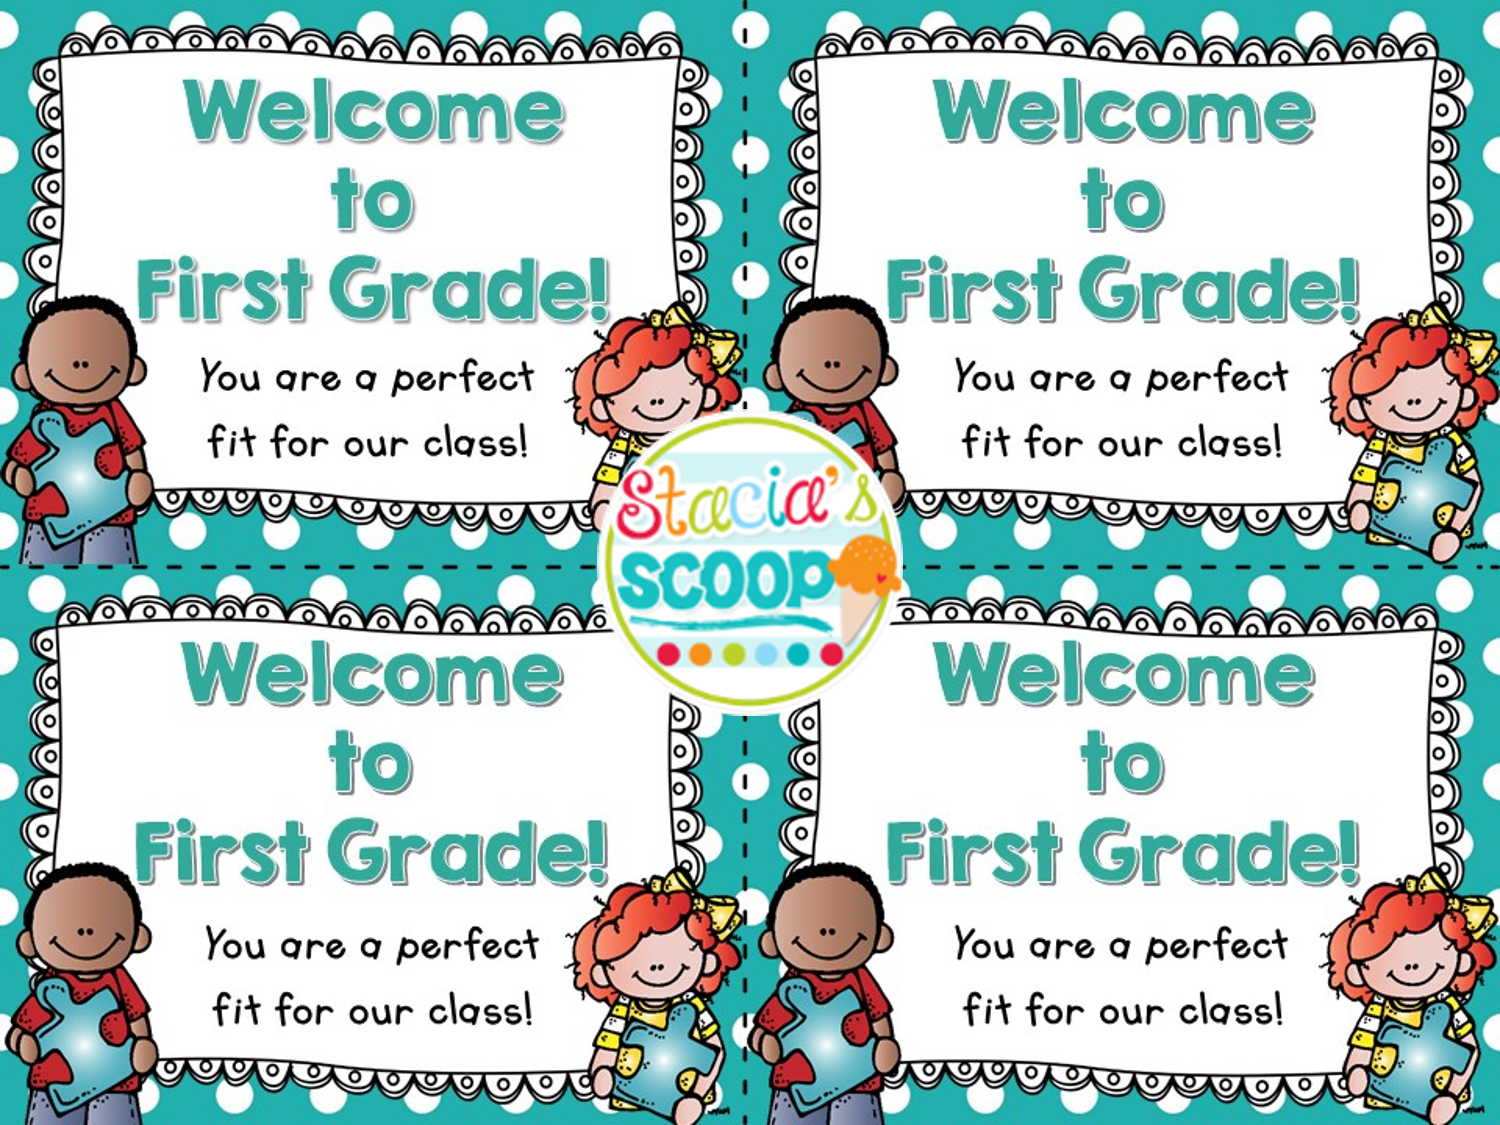 http://www.teacherspayteachers.com/Product/Welcome-Back-to-School-Postcards-for-Students-Freebie-1354772